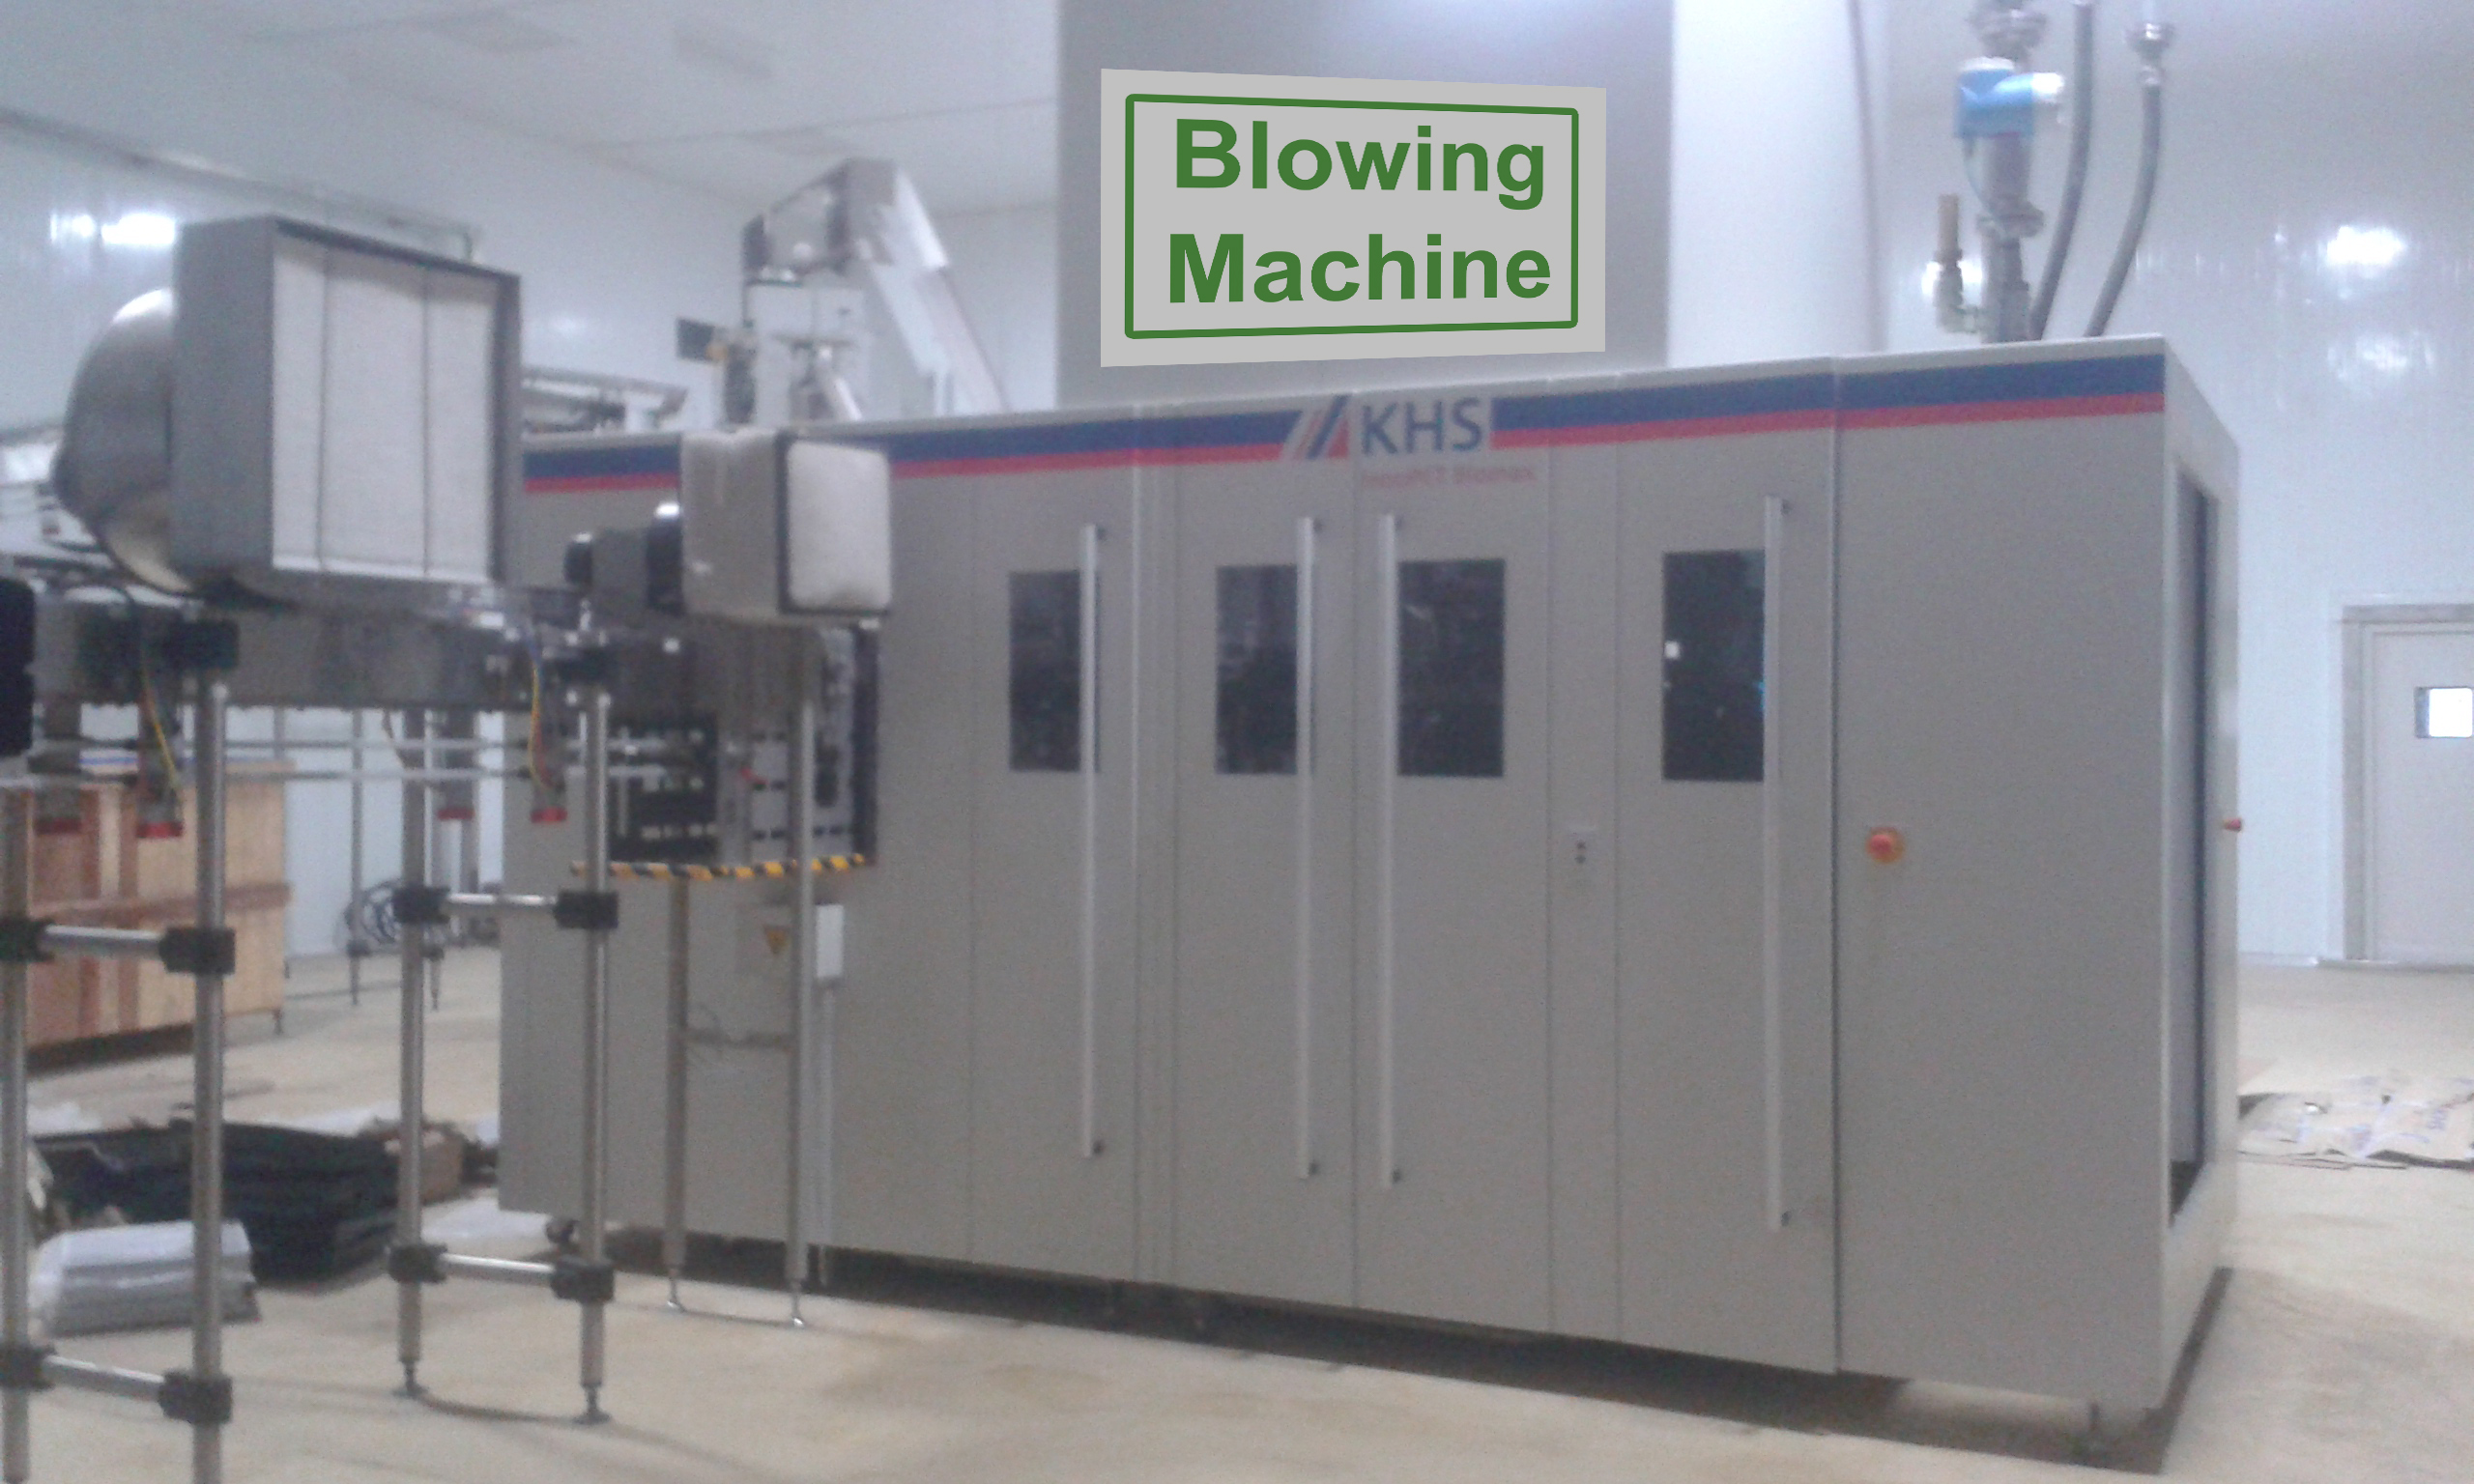 Blowing Machine (1)